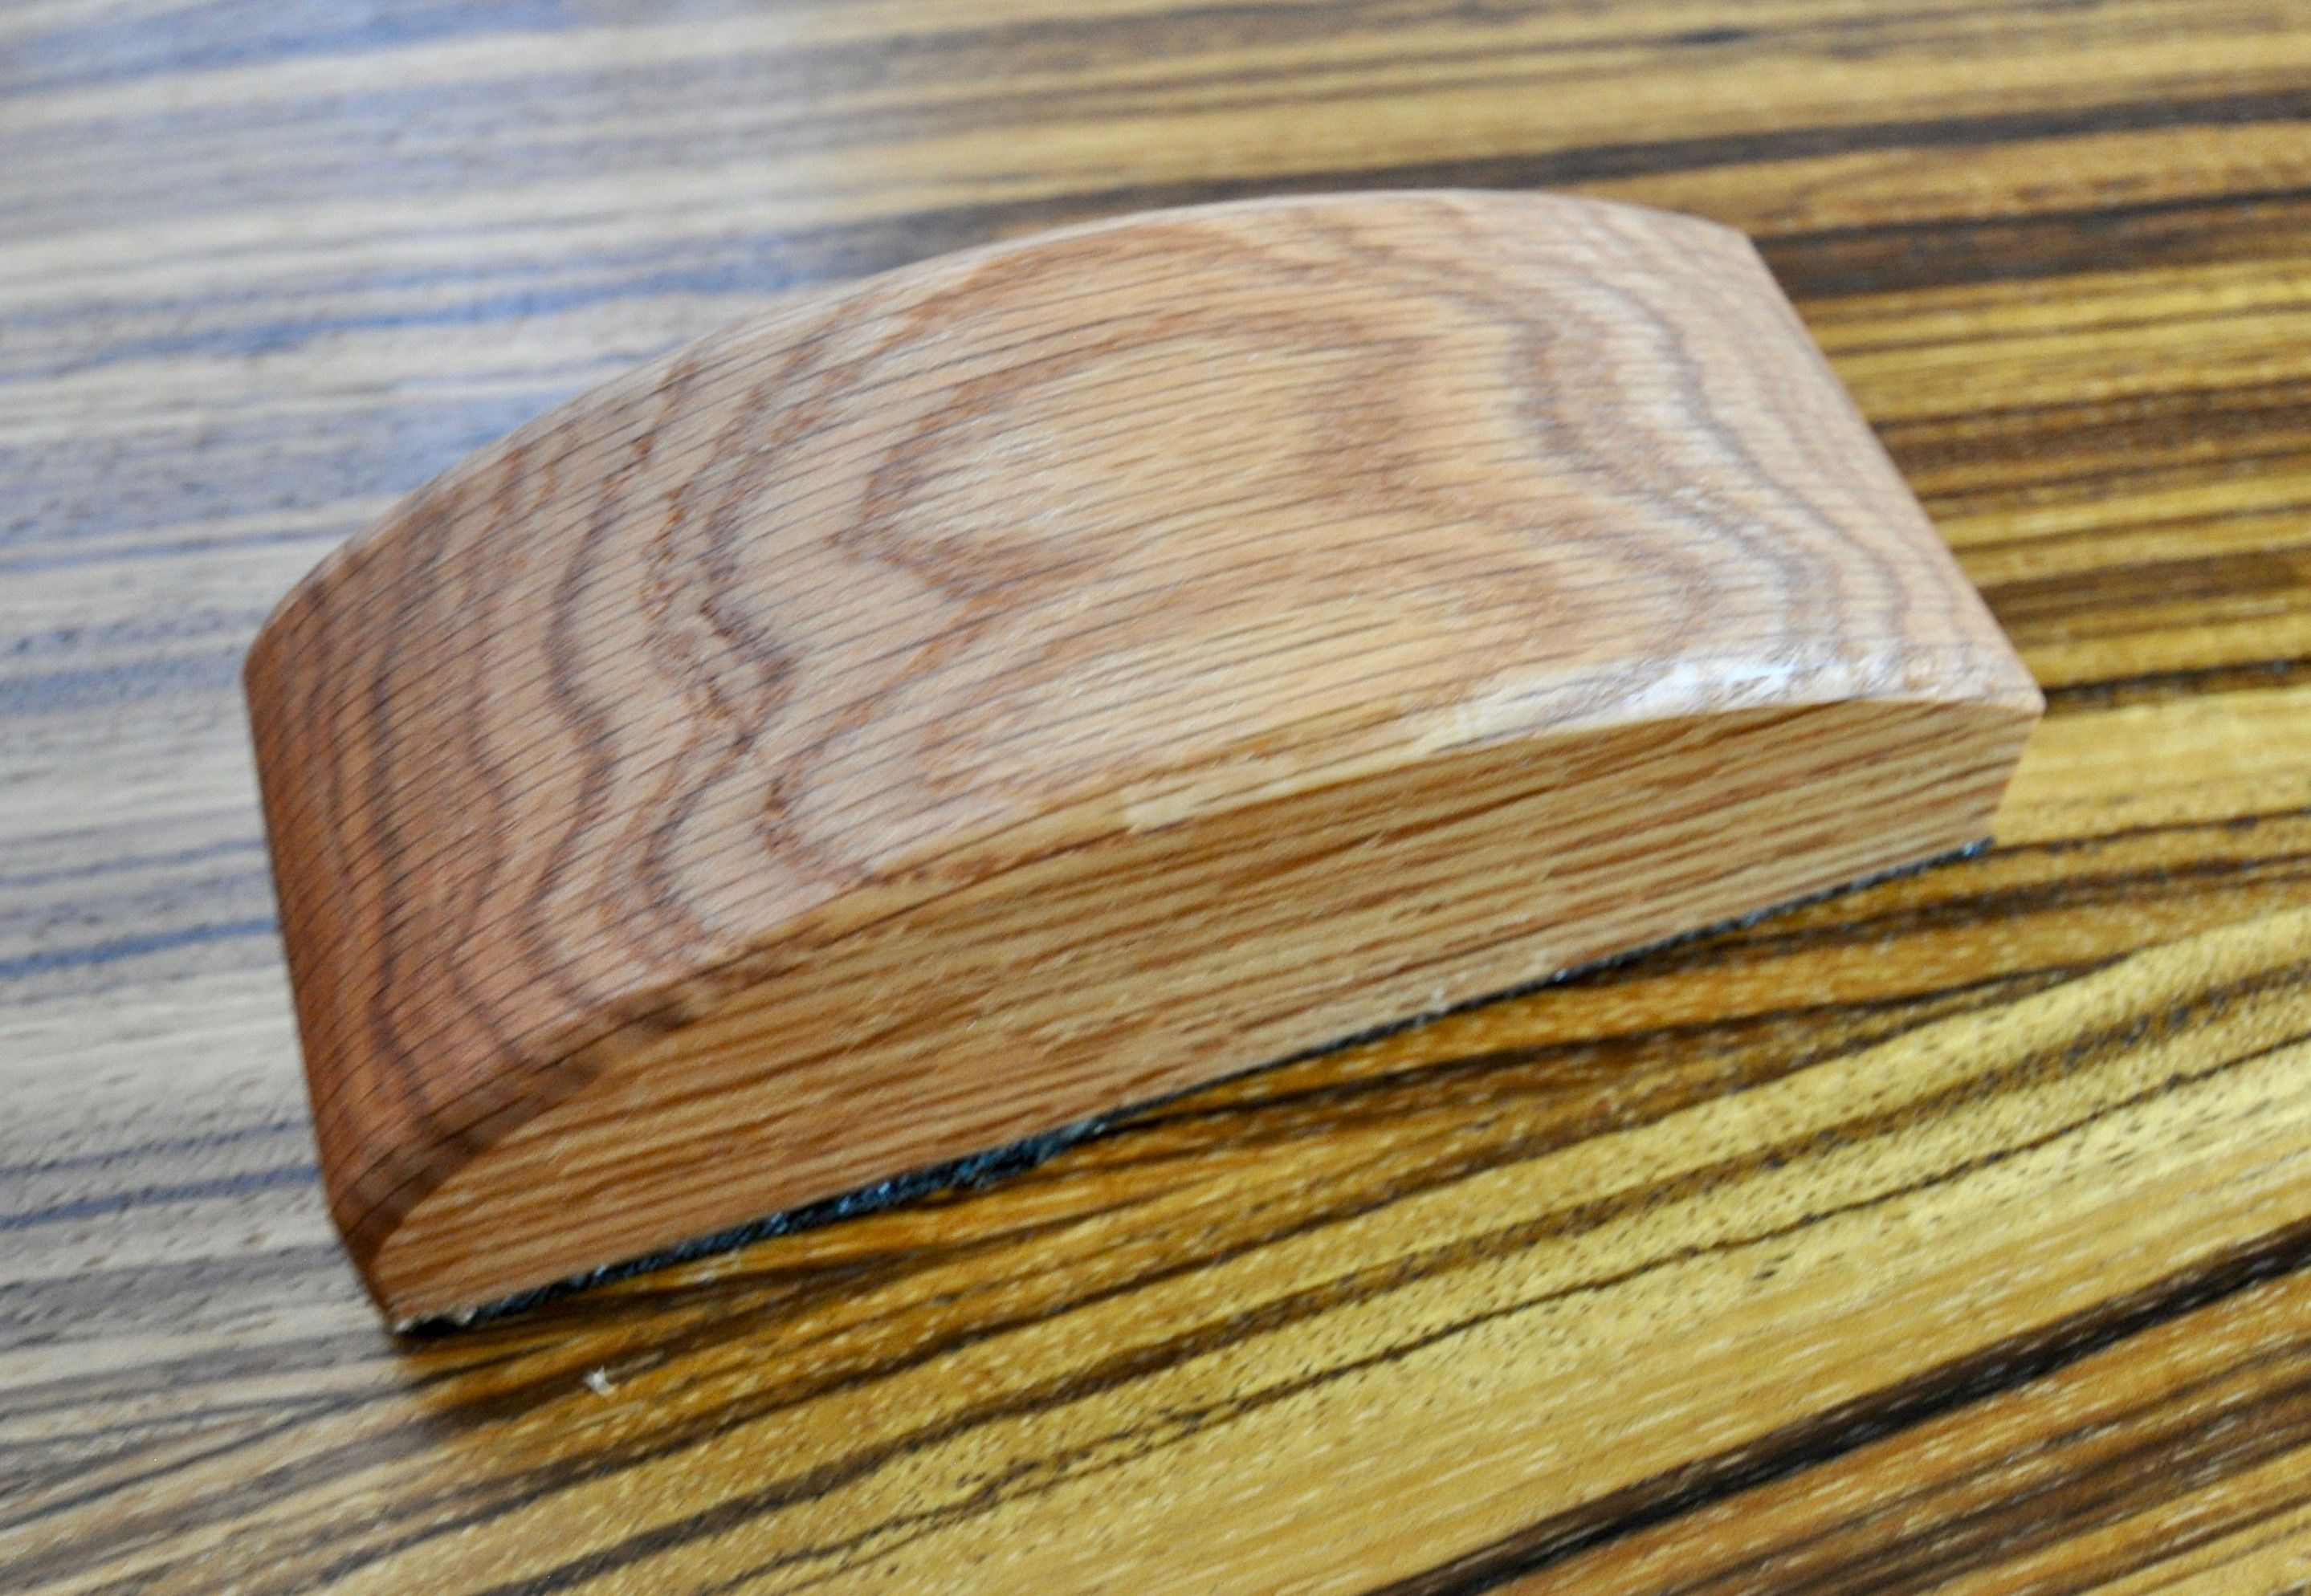 Wood Sanding Block Handcrafted From Red Oak Designed For Hook Loop Sandpaper Approximate Dimension Woodworking Projects Diy Diy Woodworking Sanding Block